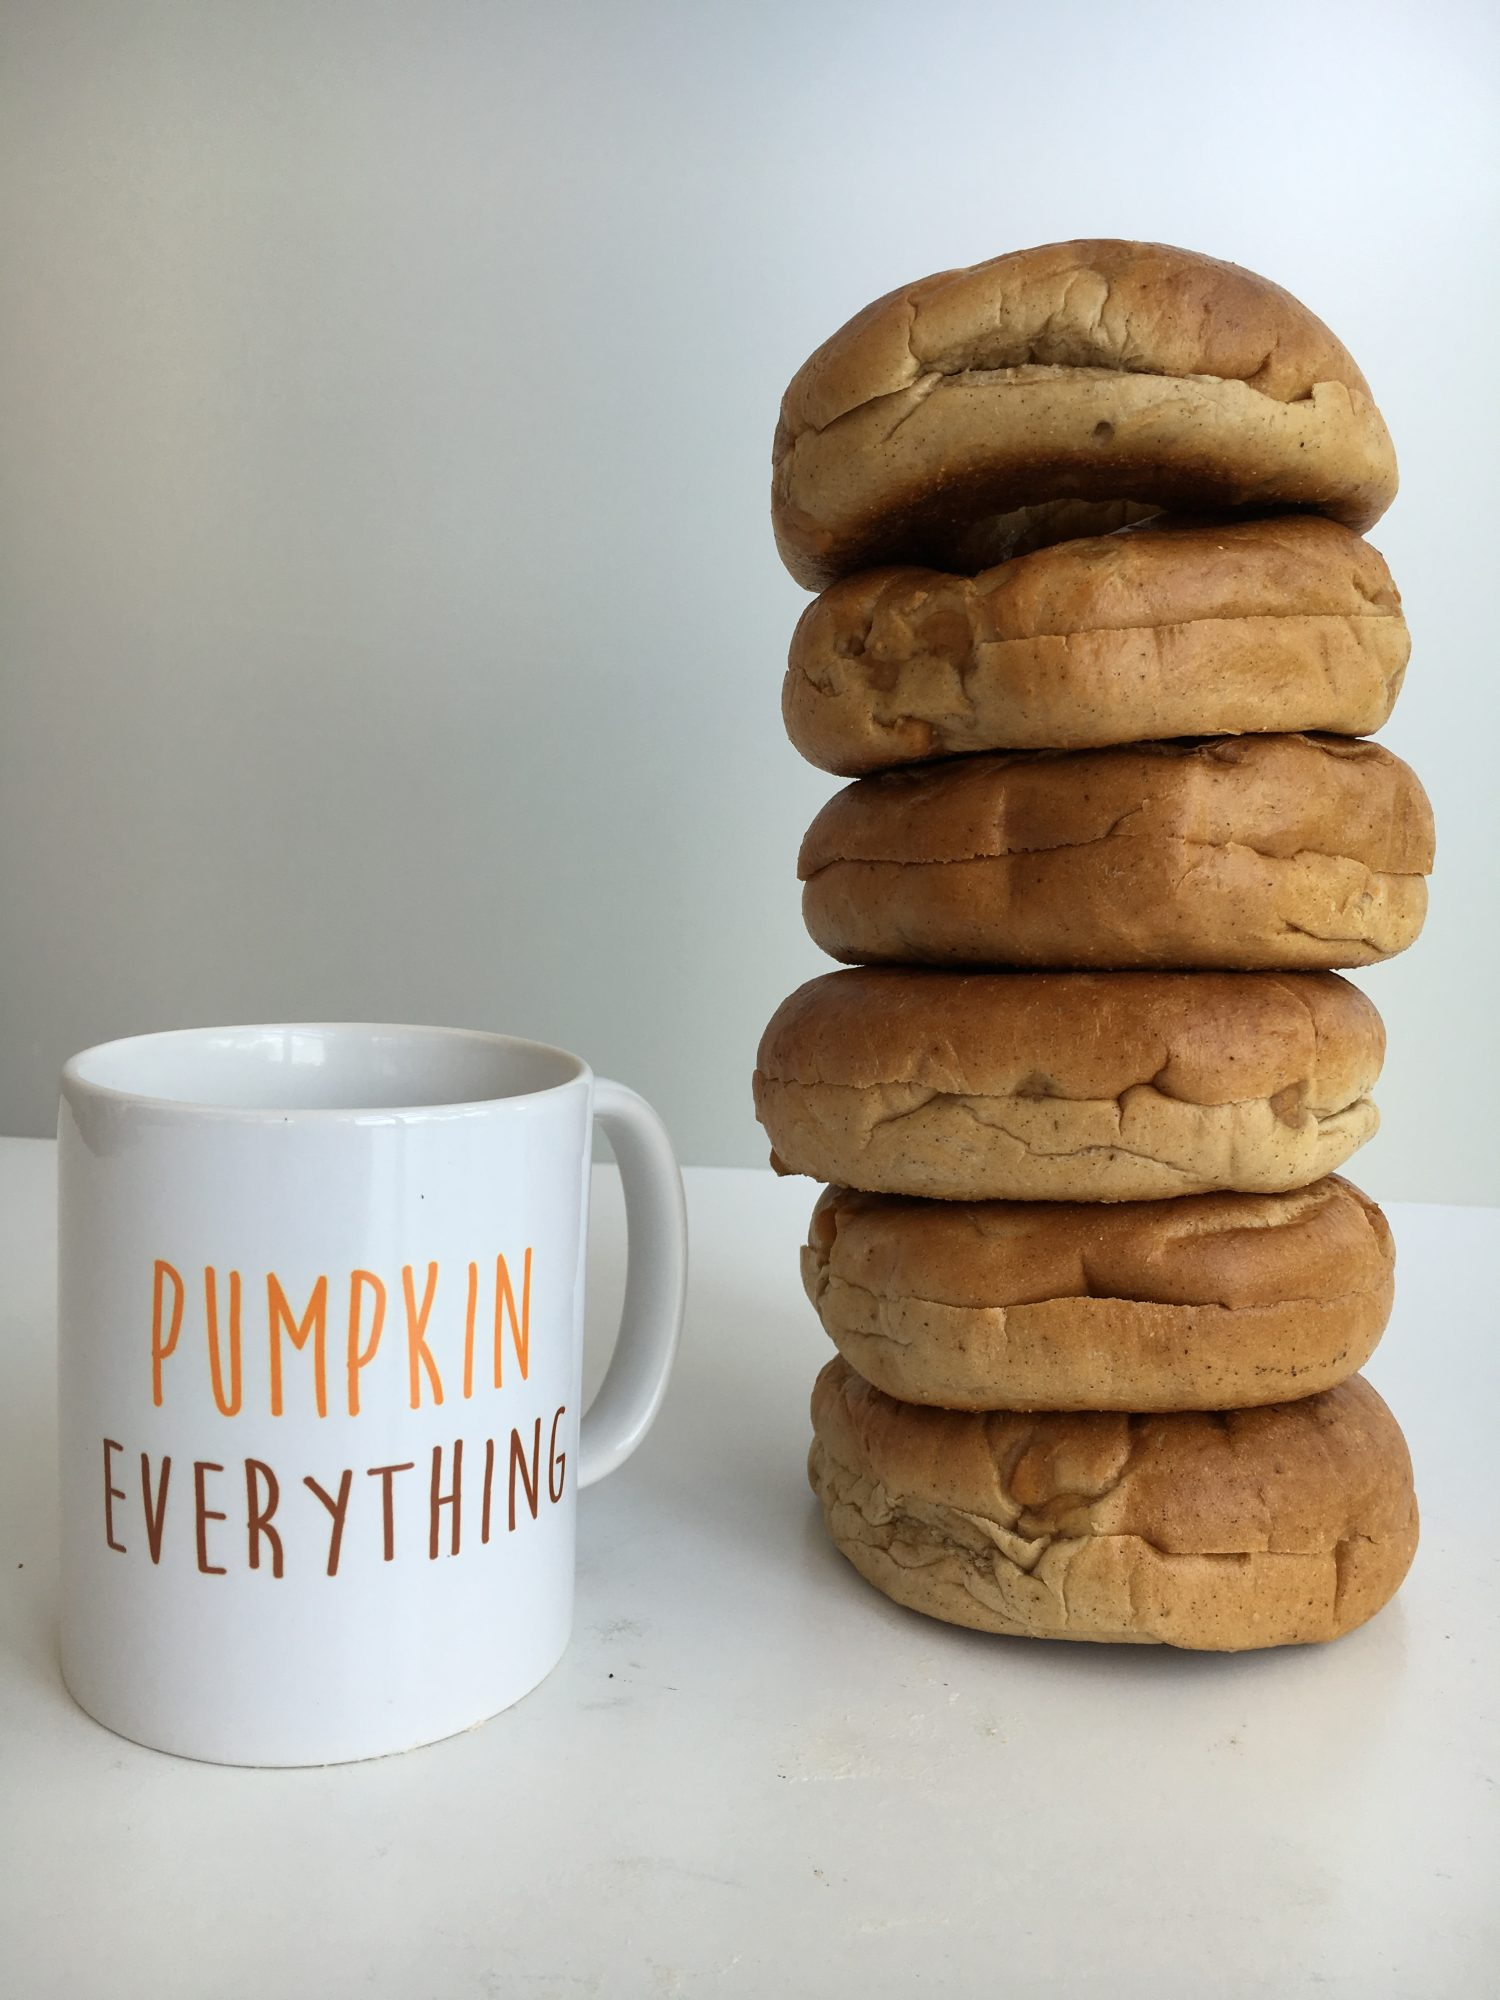 5 Reasons It's Too Damn Early for Pumpkin Spice Anything